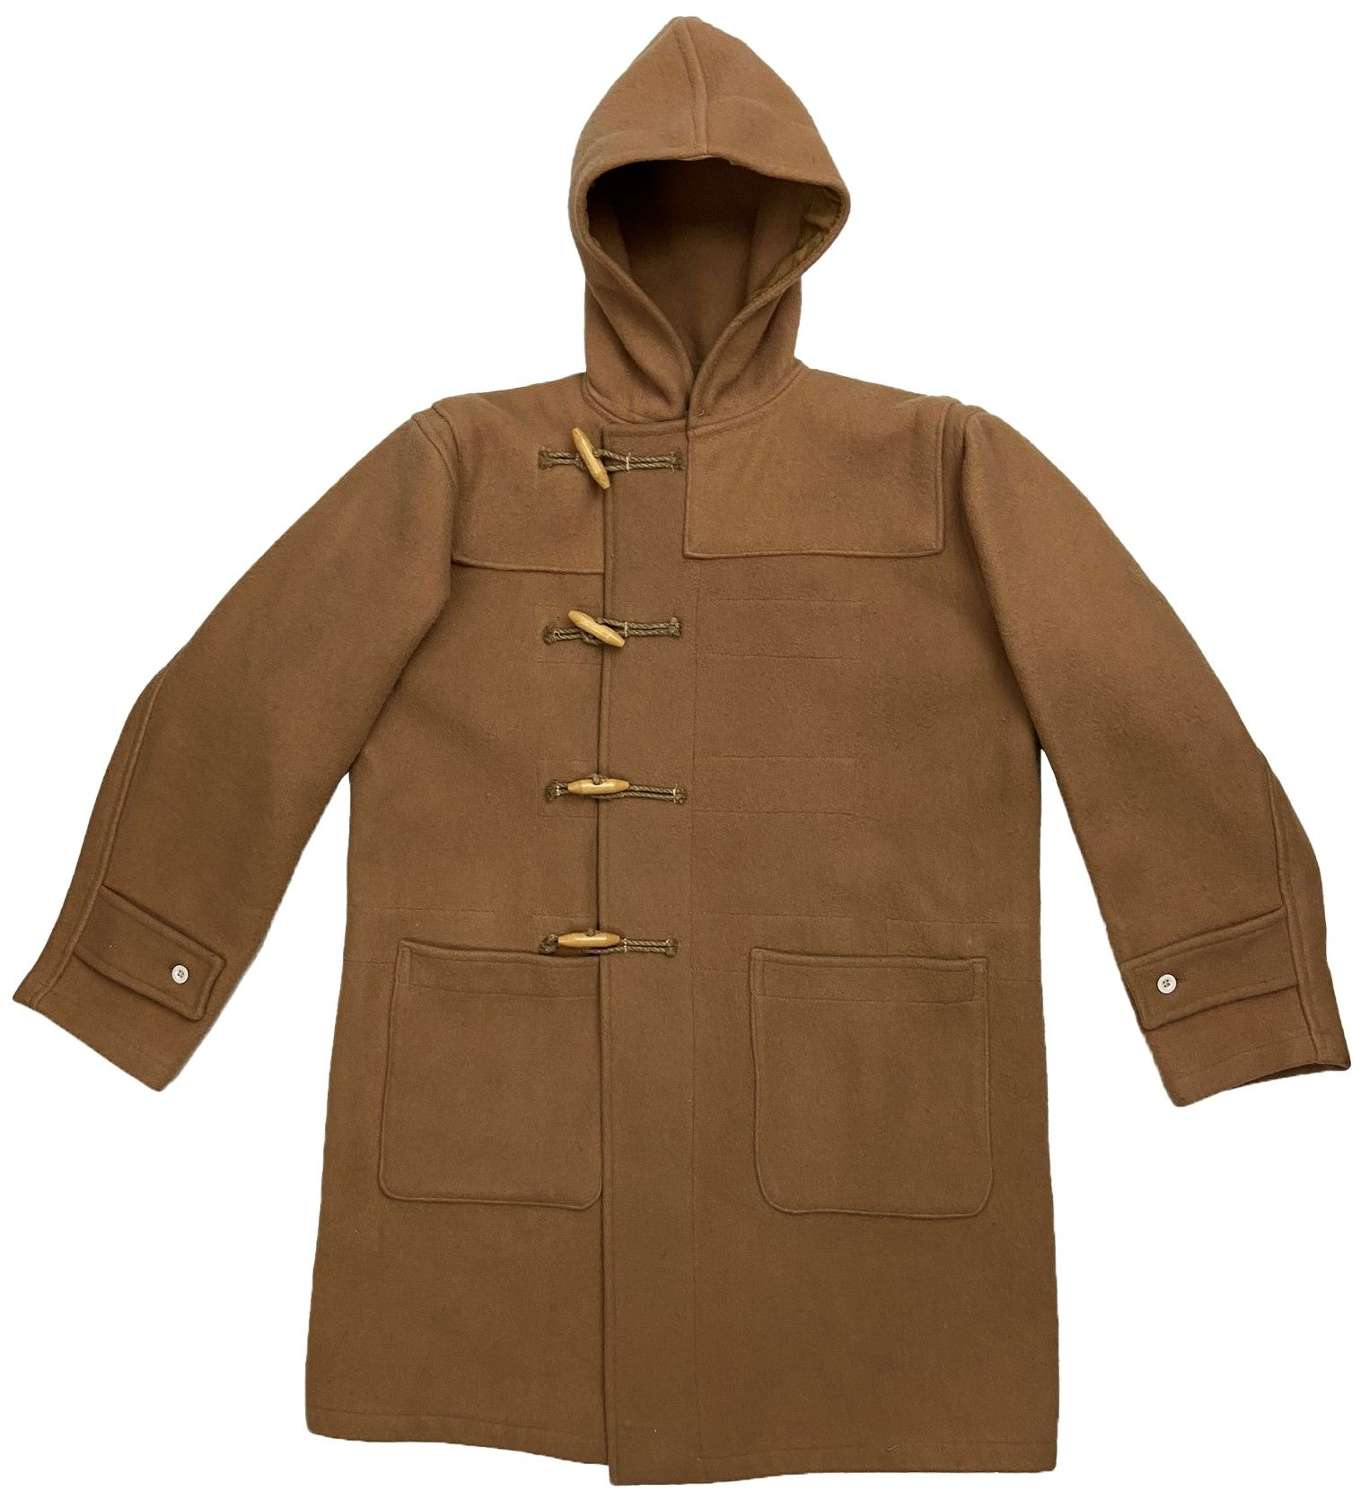 Original 1940s British Duffle Coat